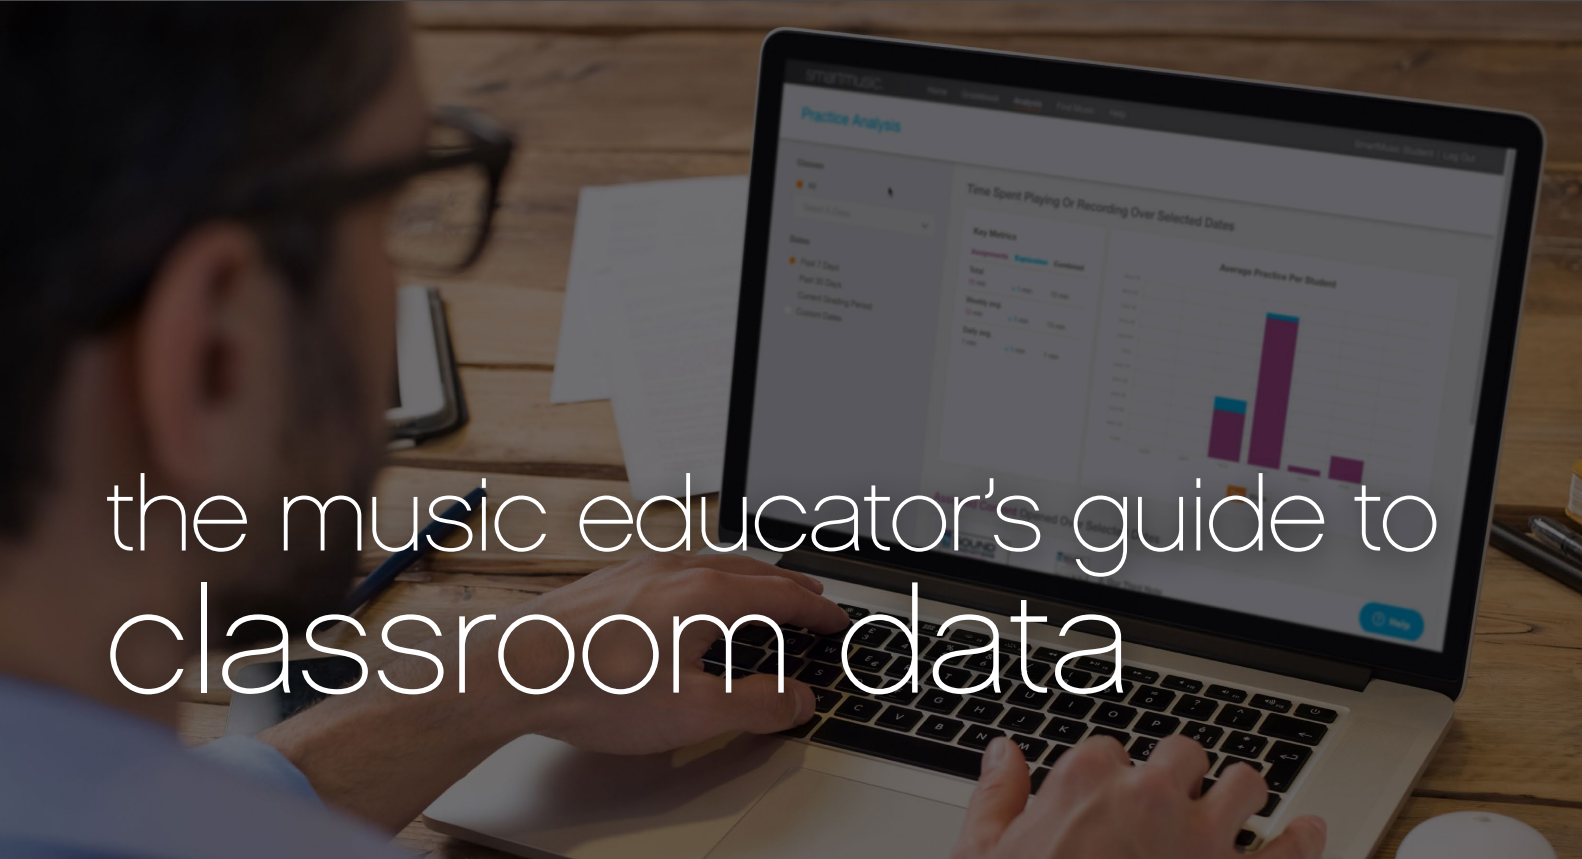 Educator's Guide to Classroom Data